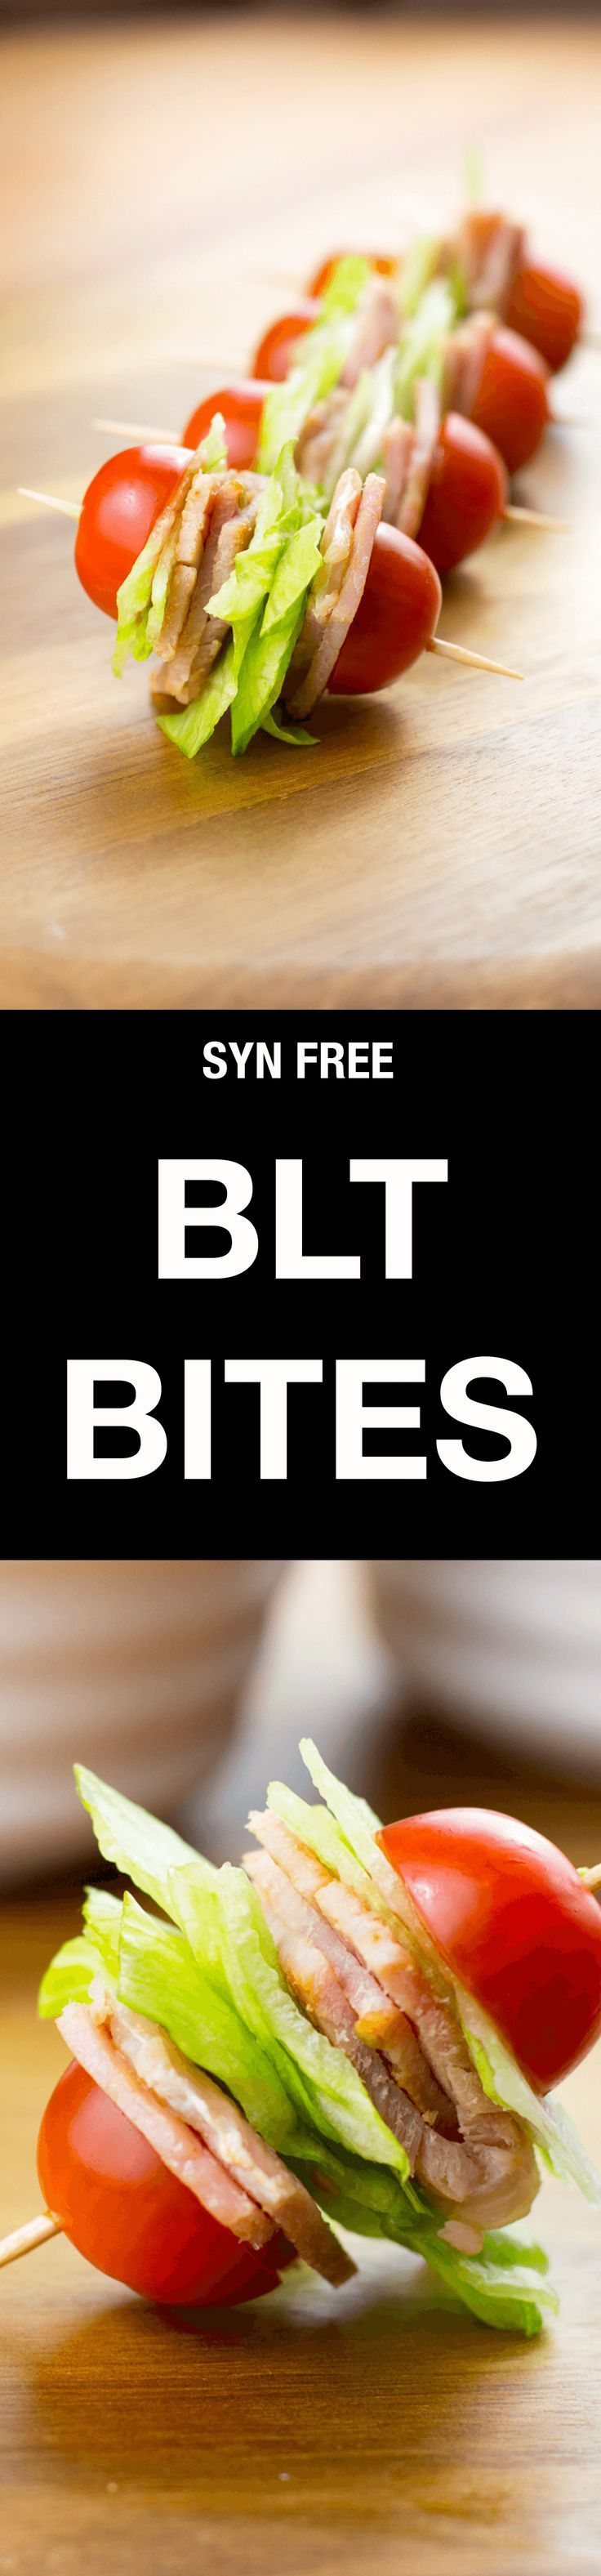 Syn Free BLT Bites   Slimming World